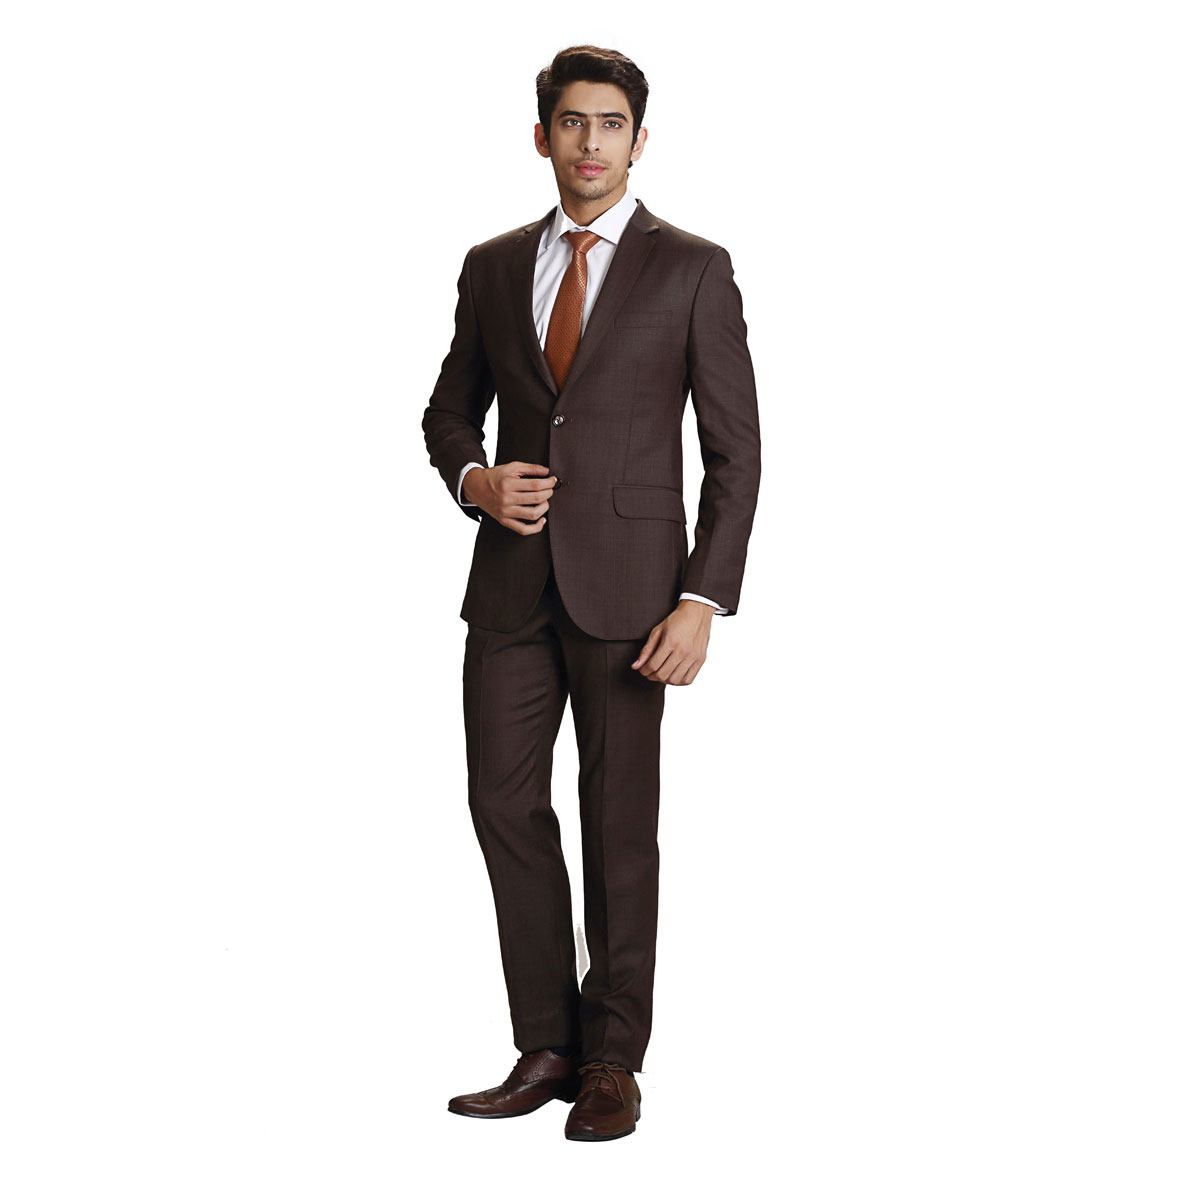 Best Custom Tailored Suits Online